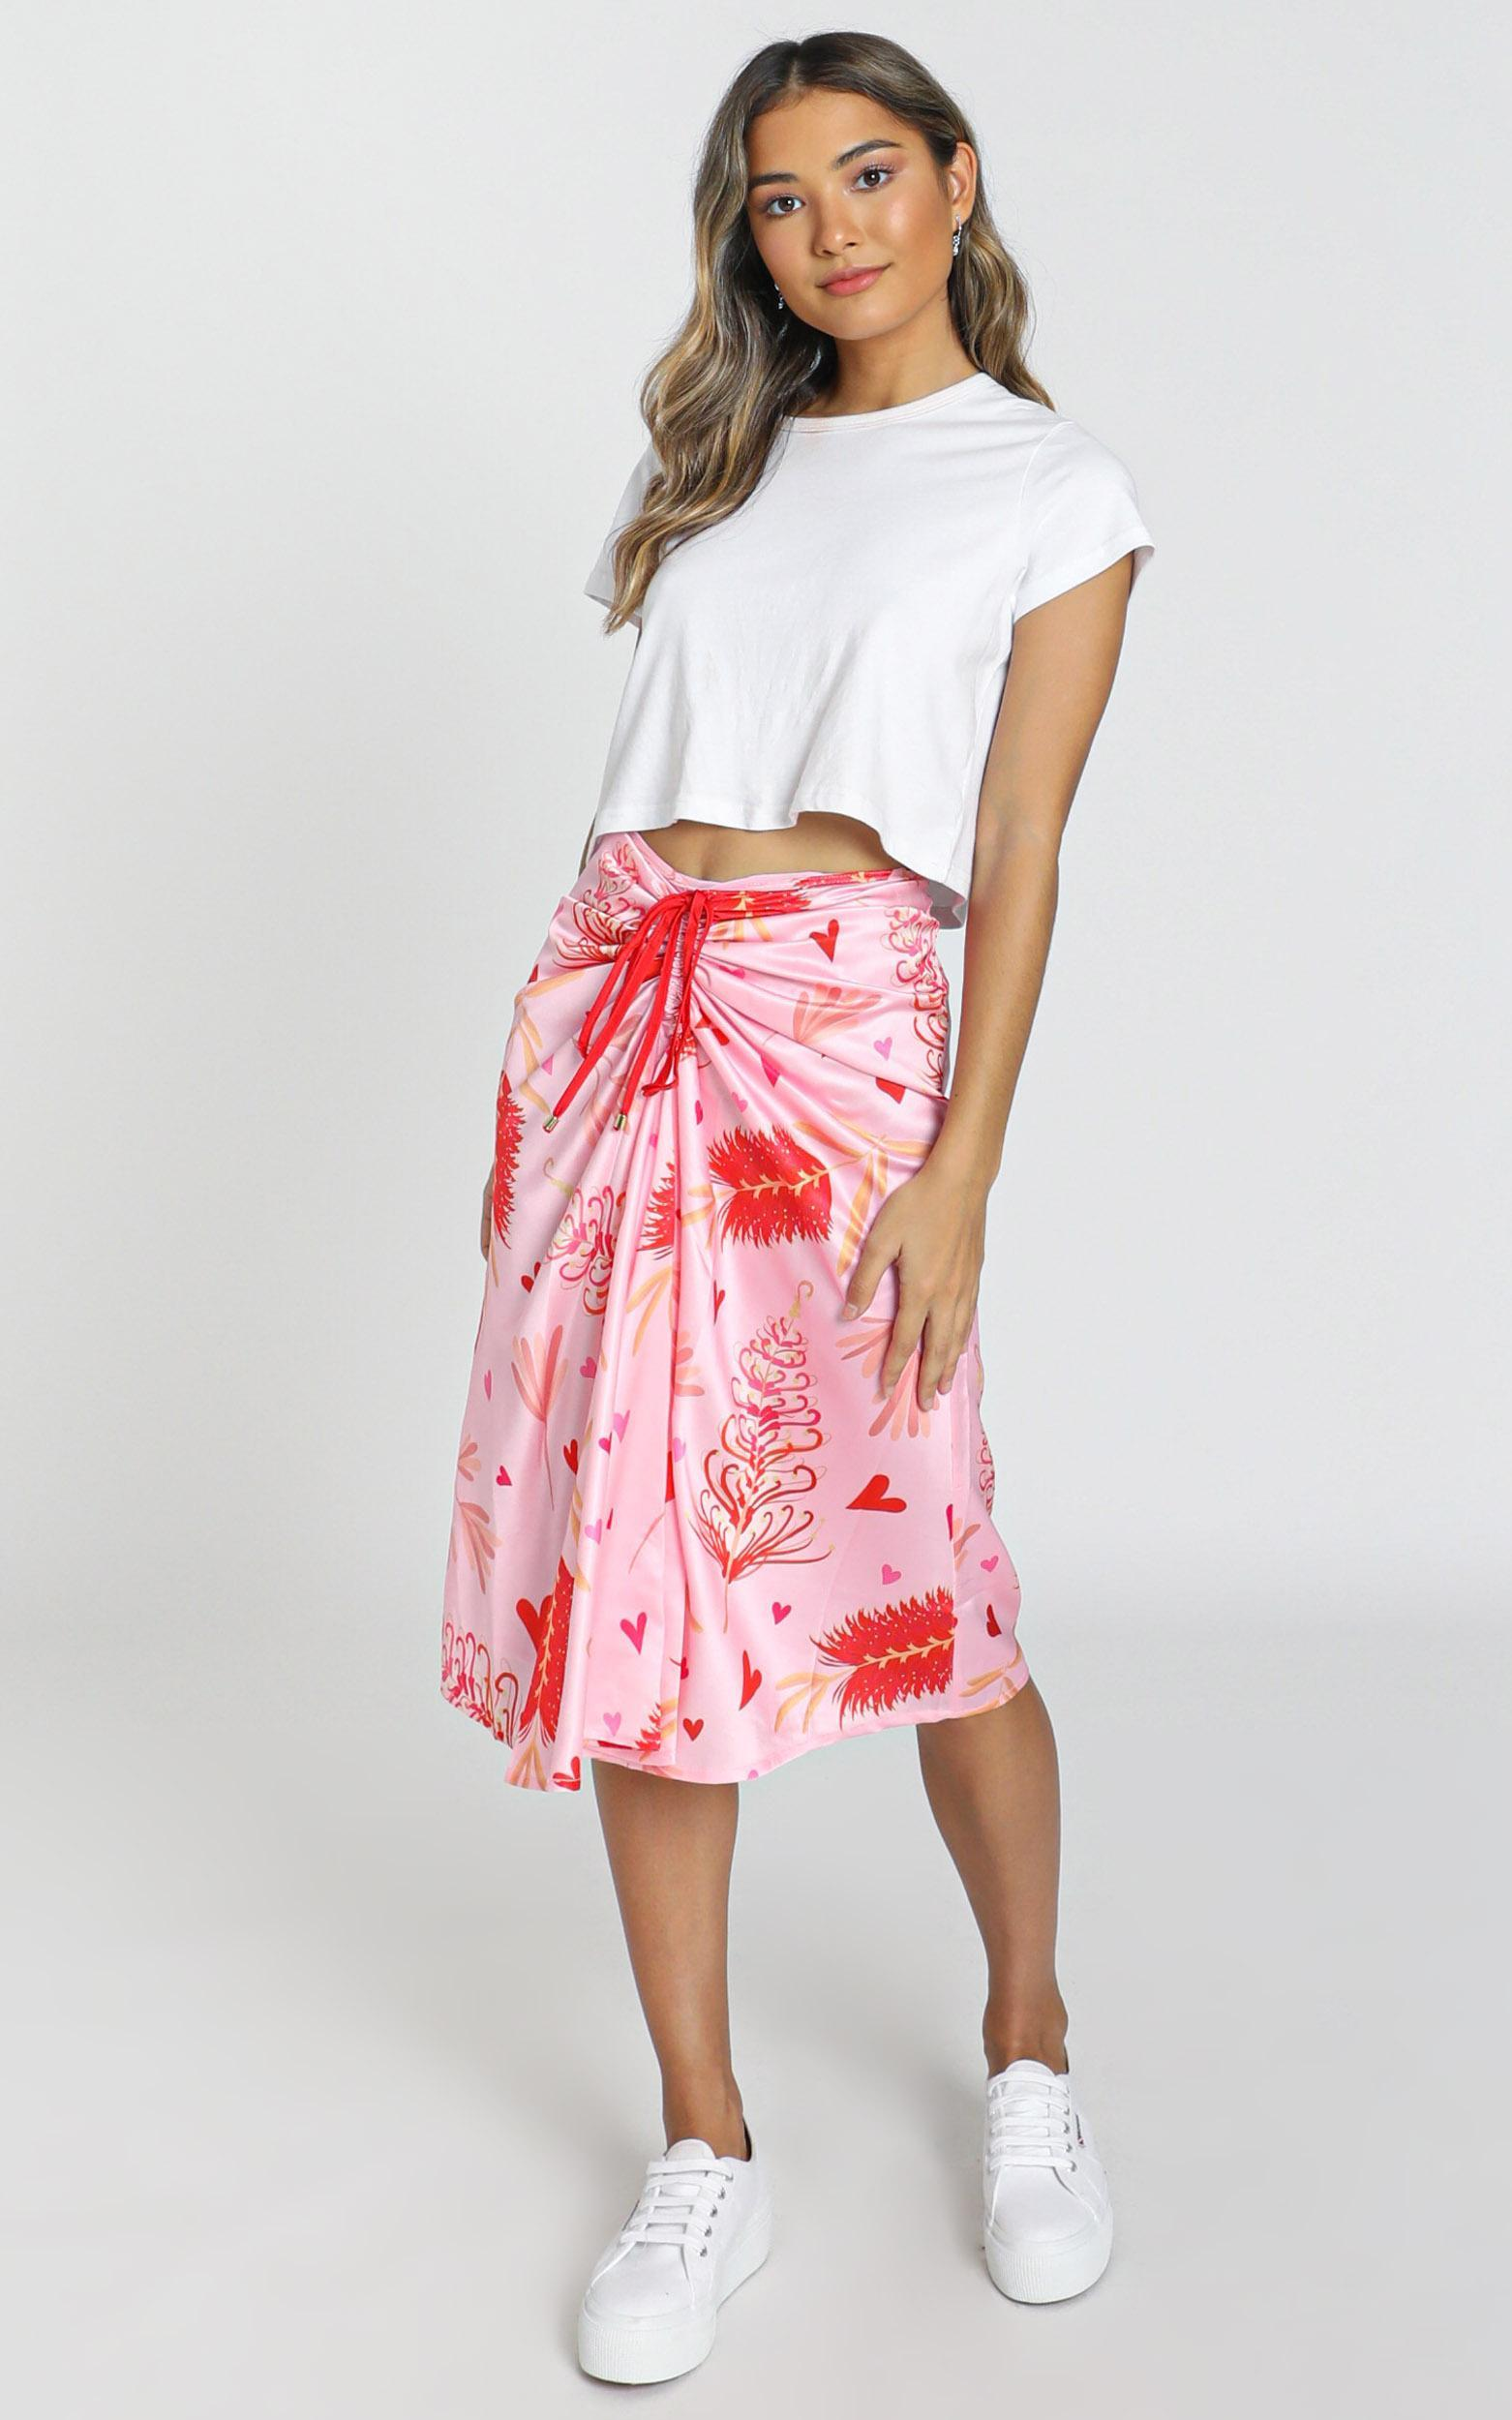 ZYA The Label - Myrtle Magic Skirt in pink print, Pink, hi-res image number null